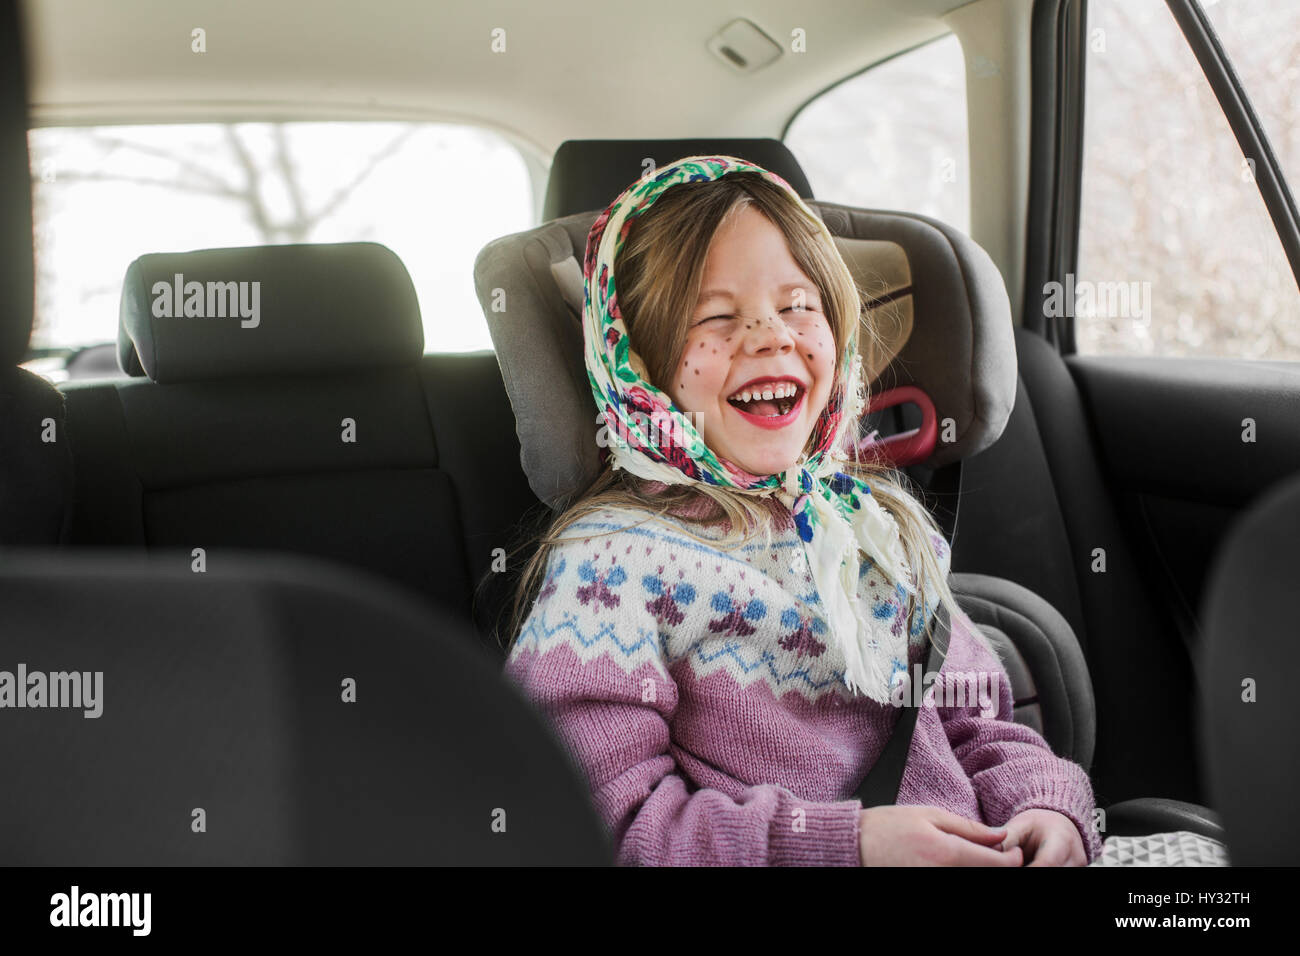 Sweden, Girl (4-5) dressed up as Easter witch wearing headscarf laughing in car - Stock Image